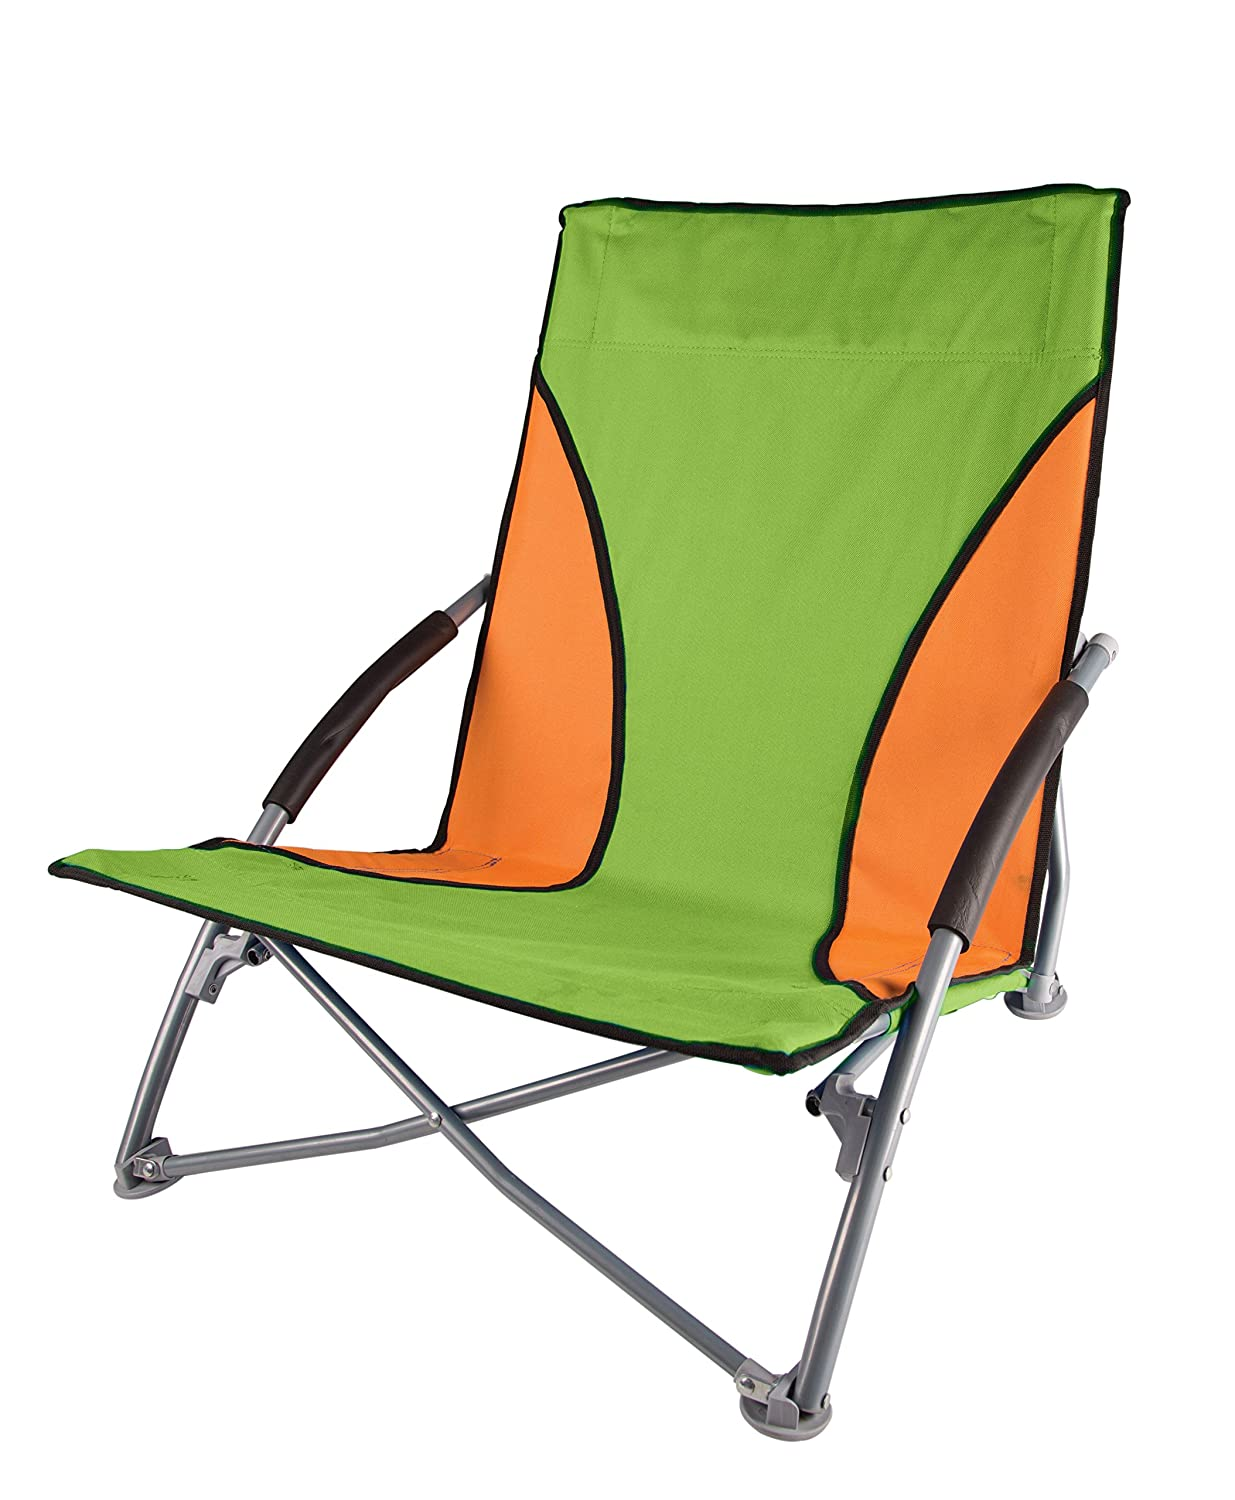 Amazon.com : Stansport Low Profile Fold Up Chair, Blue/Orange : Sports U0026  Outdoors